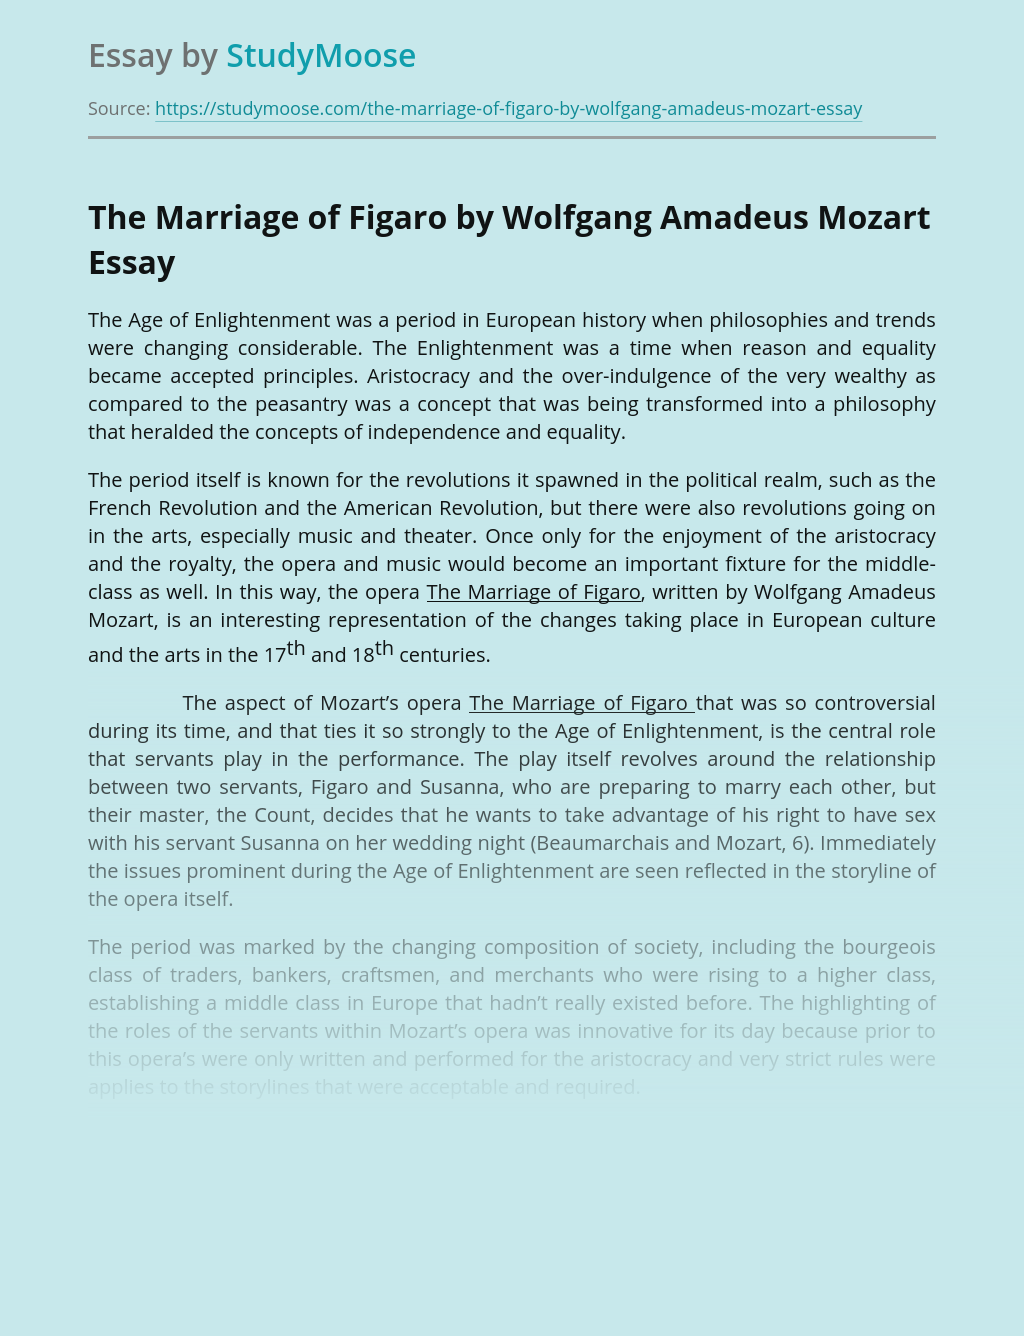 The Marriage of Figaro by Wolfgang Amadeus Mozart